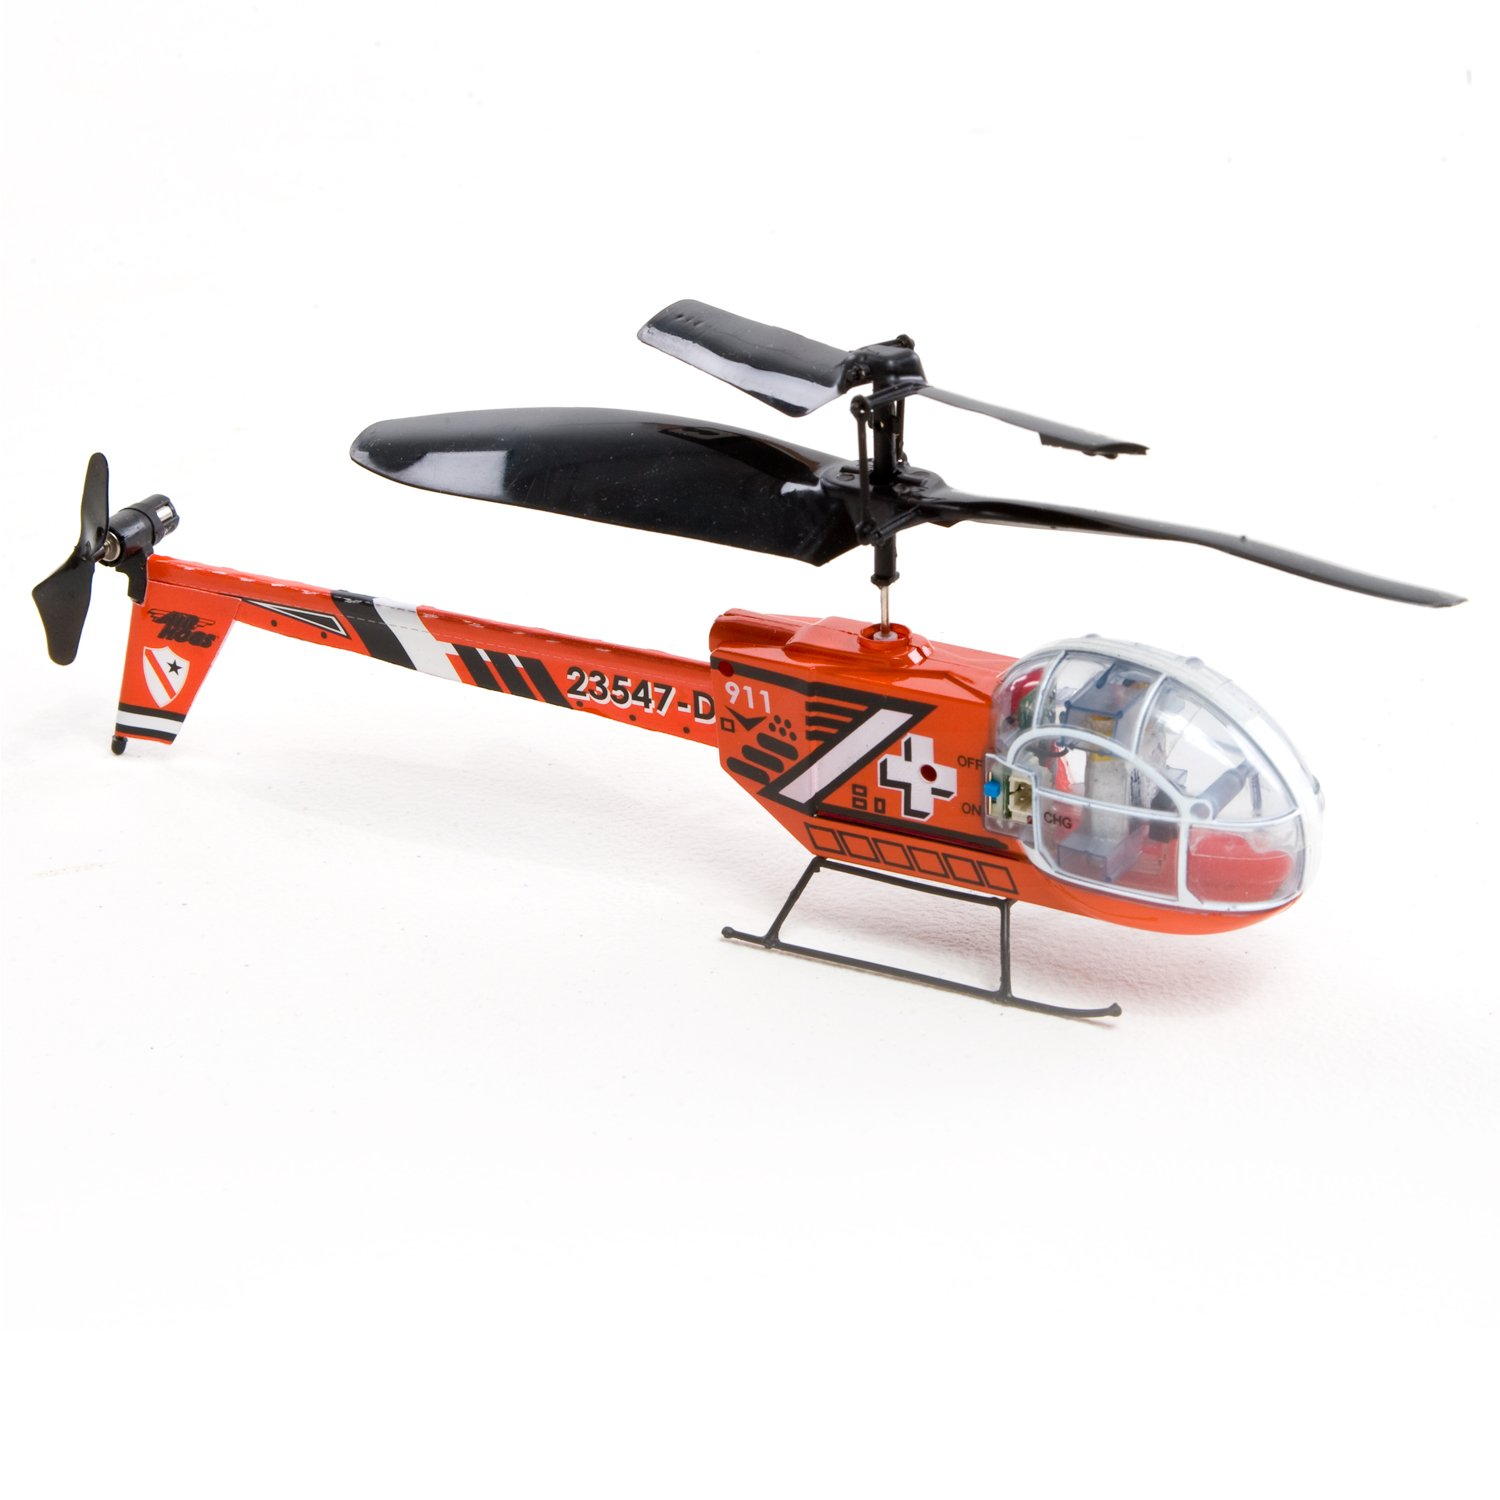 Havoc Striker Green helicopter Remote-Controlled by Spin Master